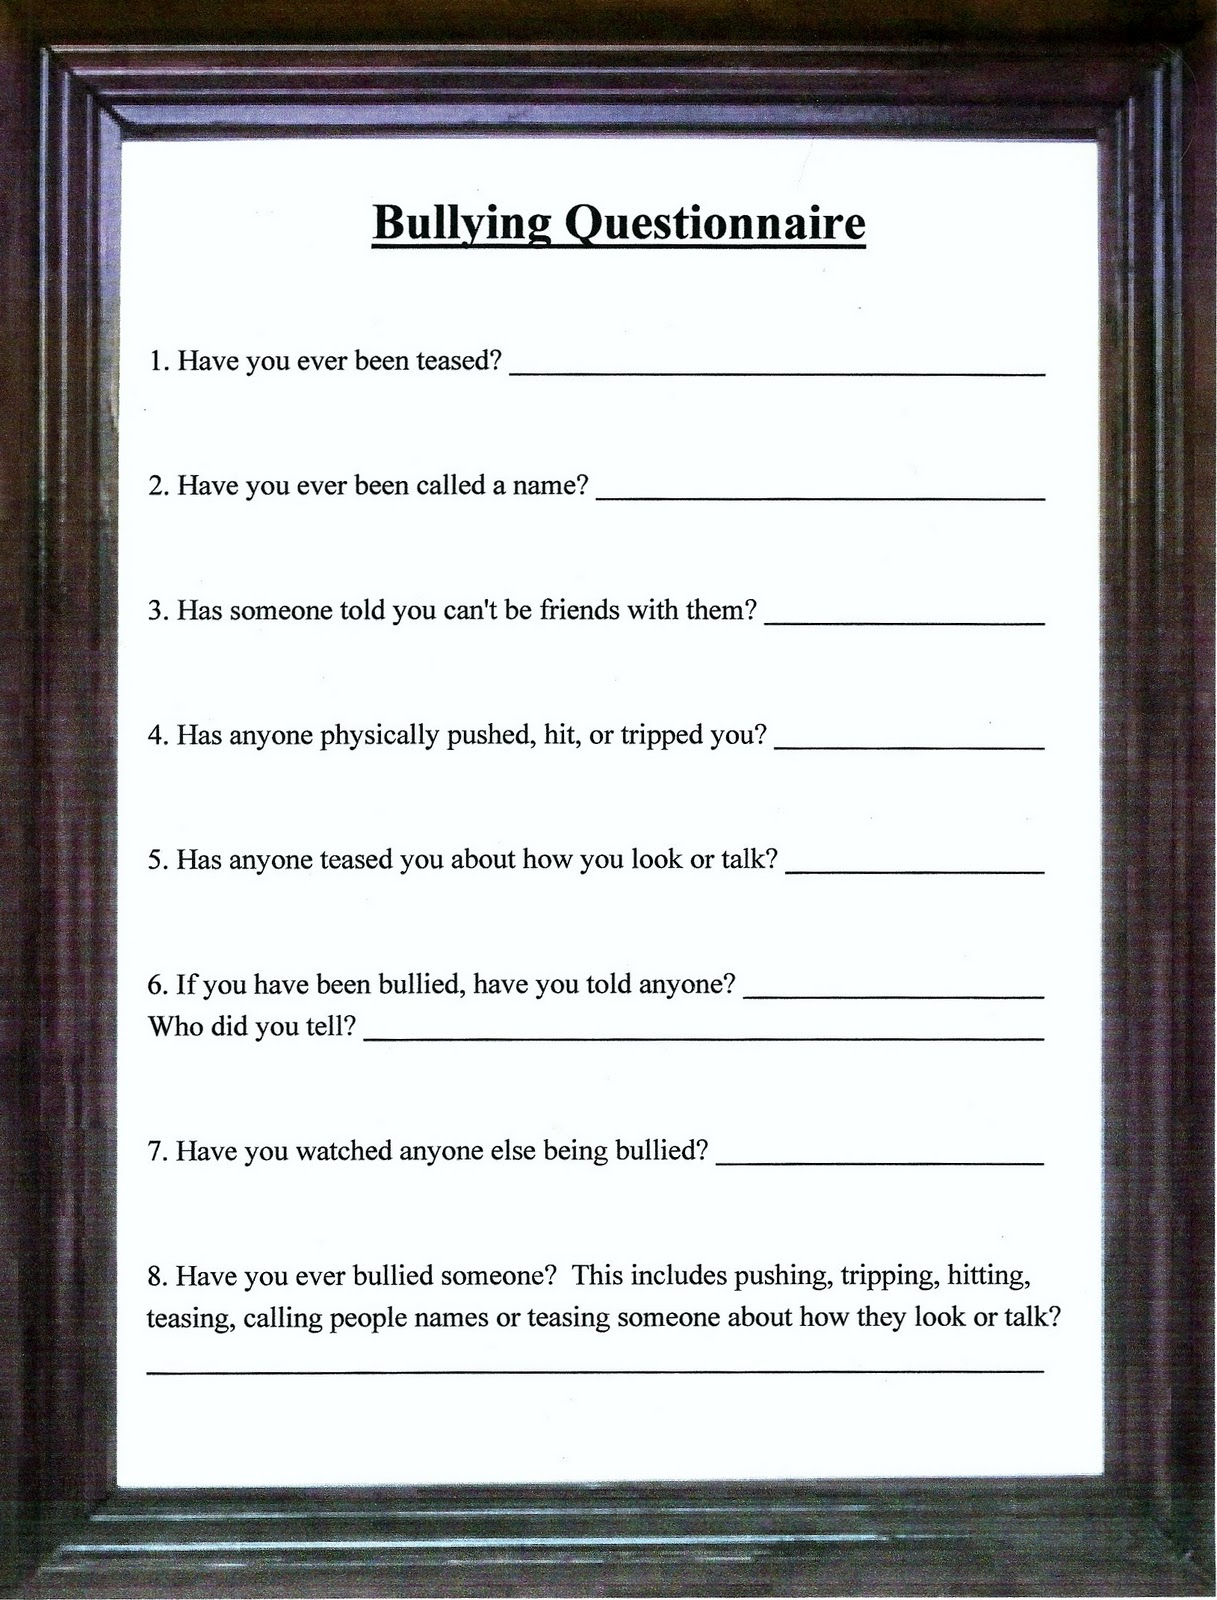 Character Education: Bullying Questionnaire & My Name Is; Bully 8